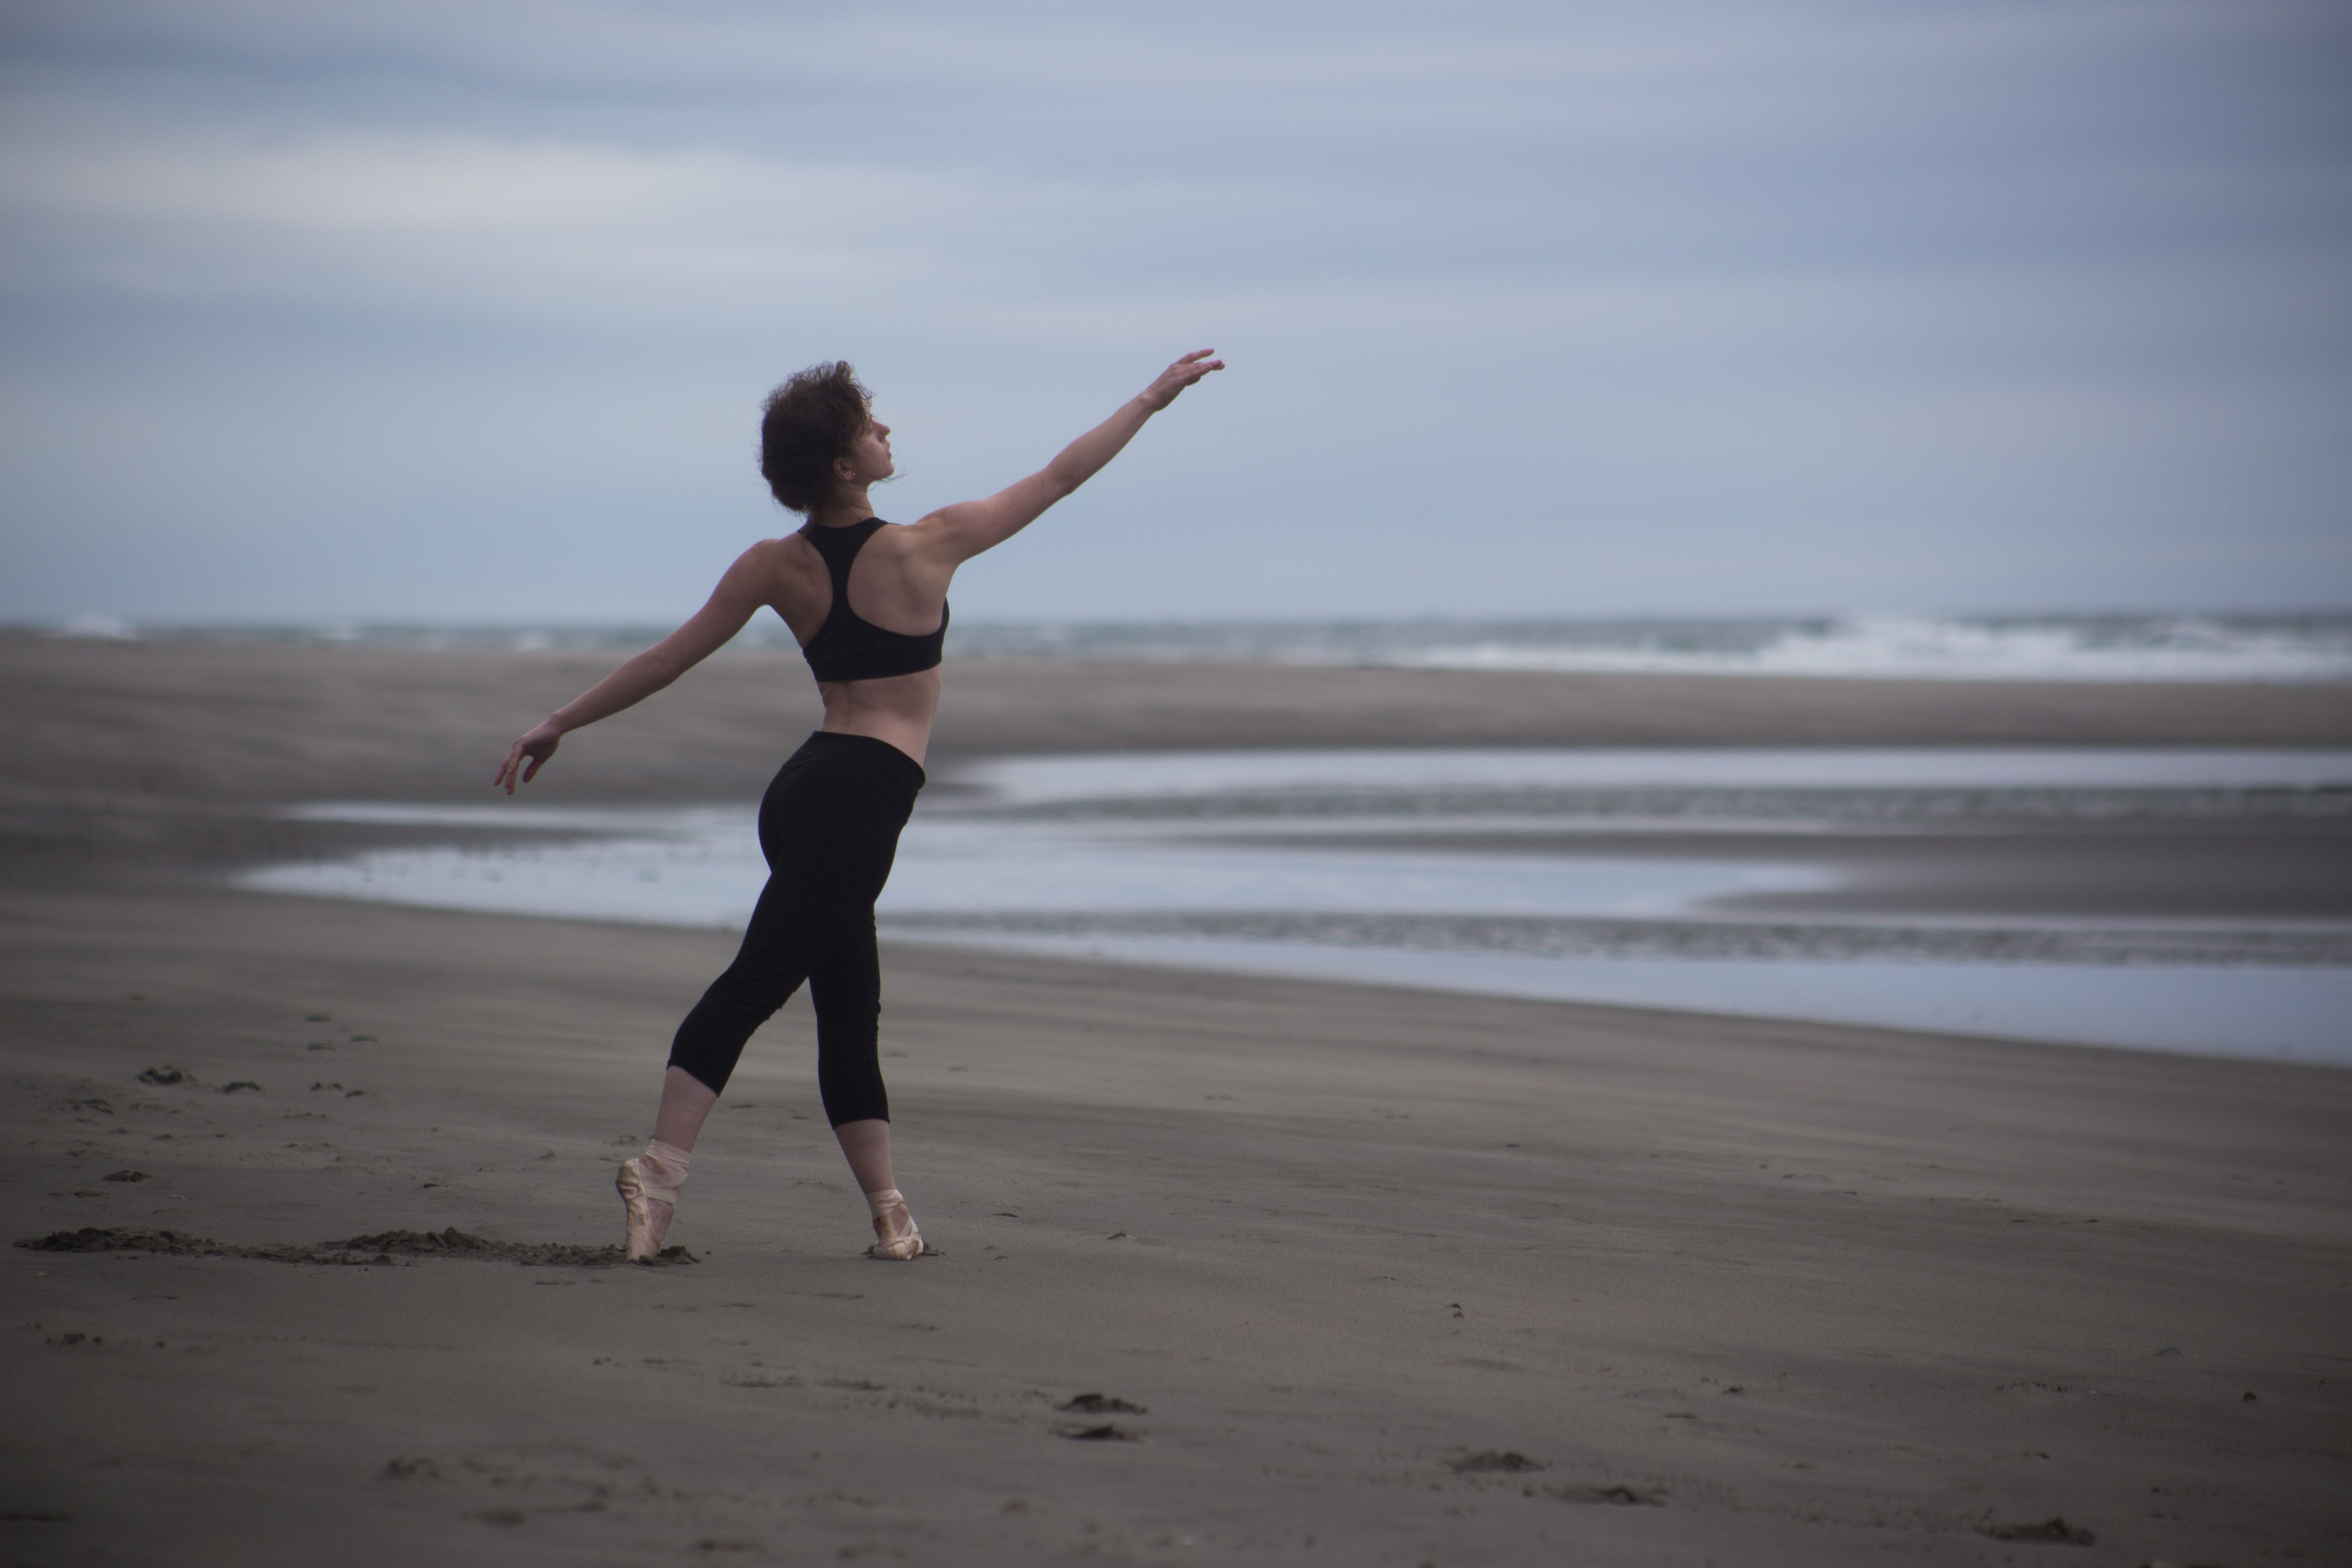 A ballet dance strikes a pose in the sand on Second Beach in Olympic National Park, Washington.